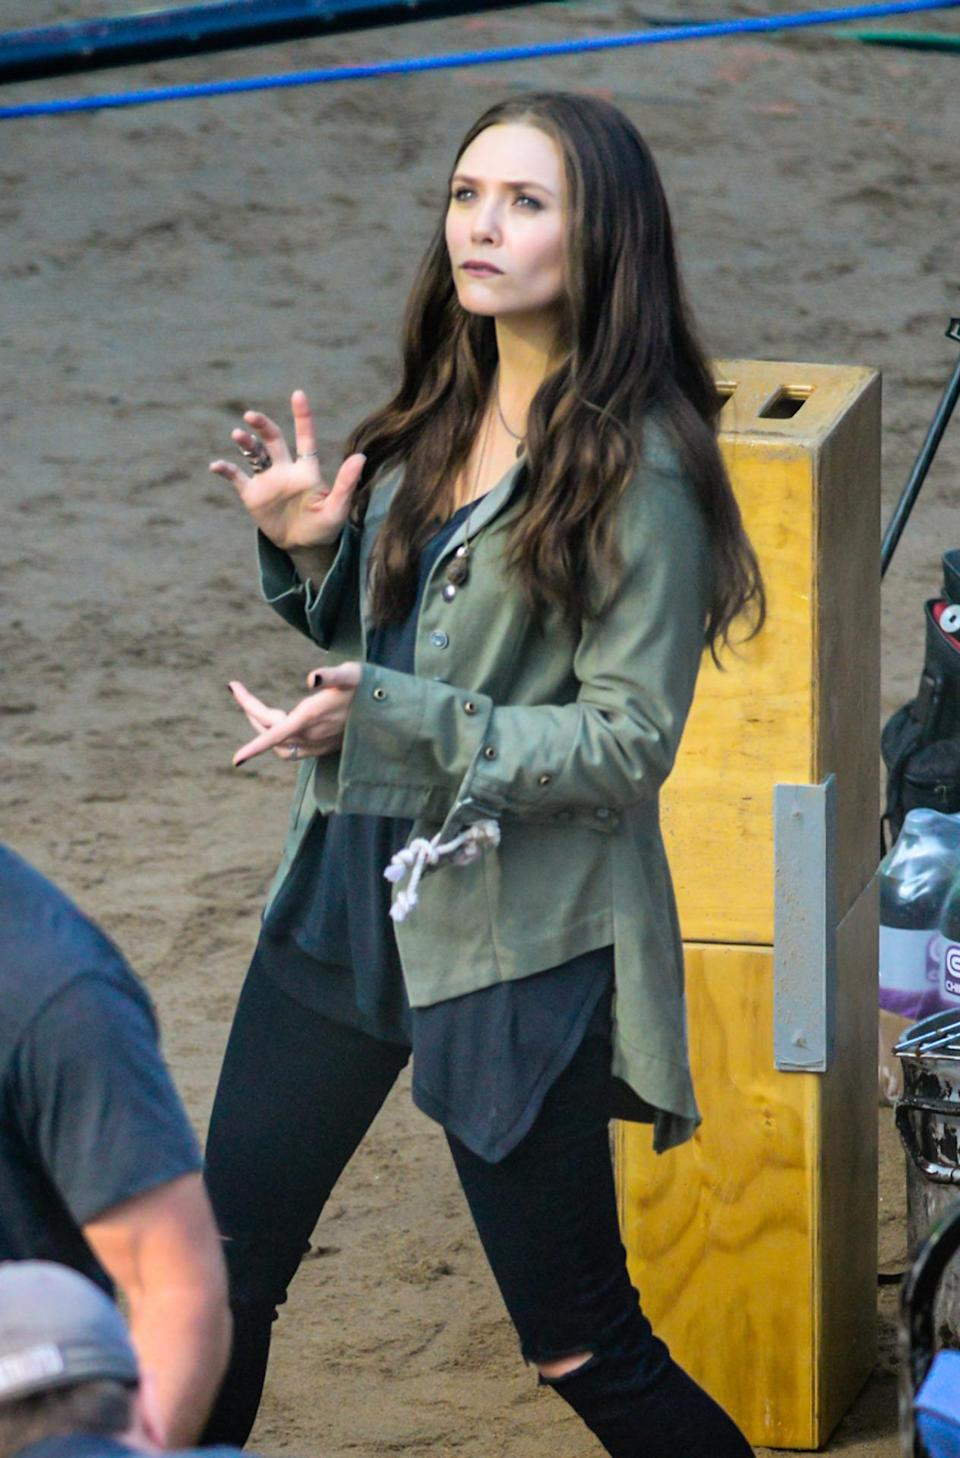 First sighting of Elizabeth Olsen doing some Scarlet Witch magic on the 'Civil War' set on May 20.